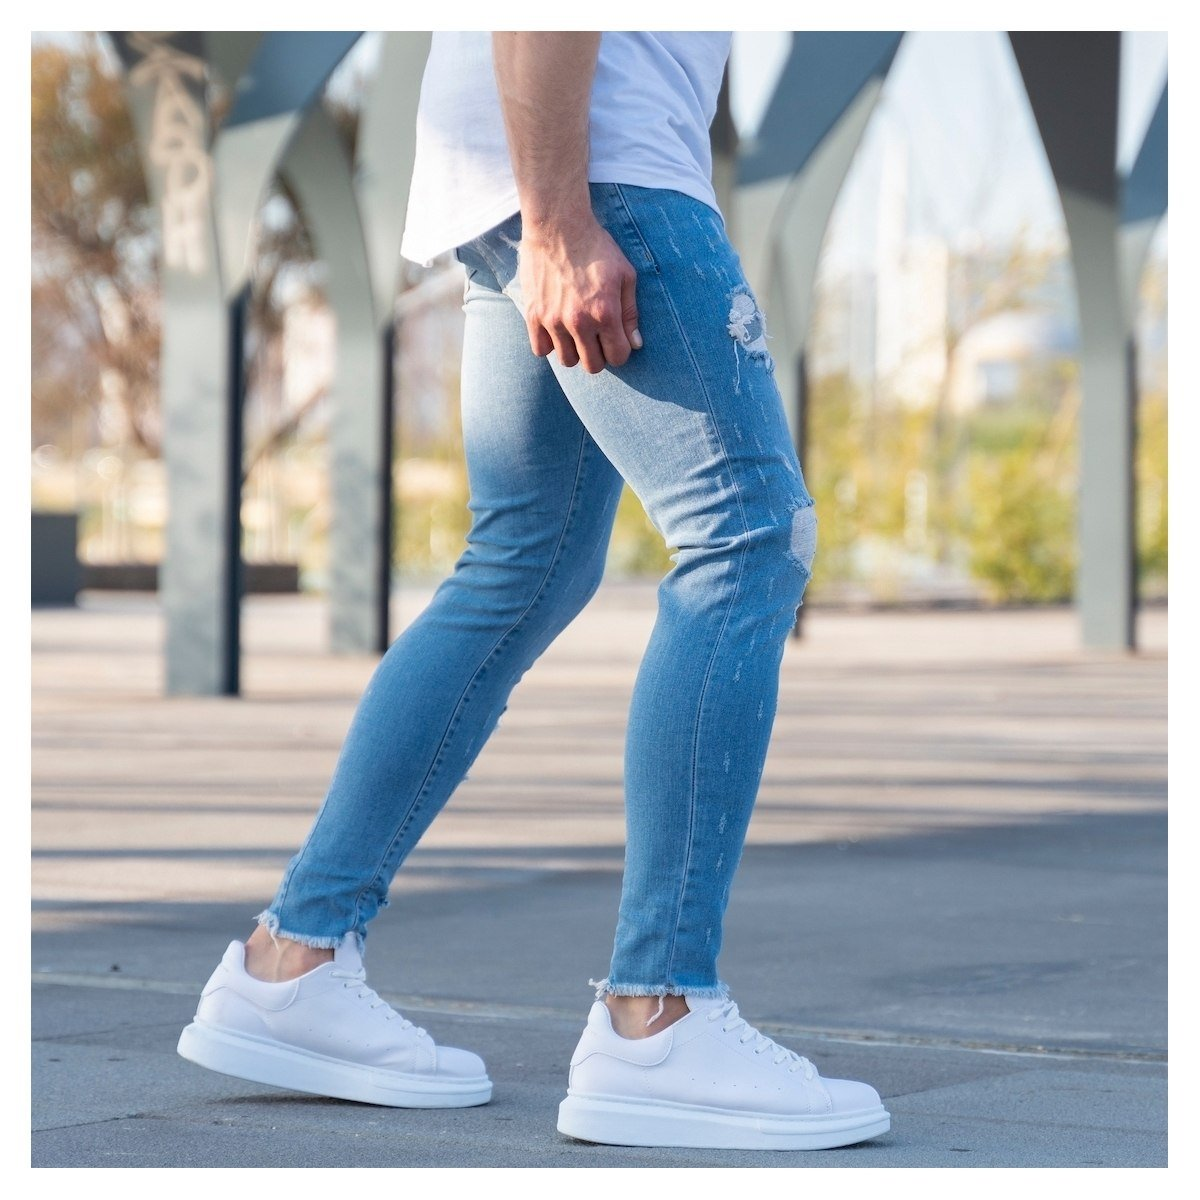 Men's Ragged Jeans In Ice Blue